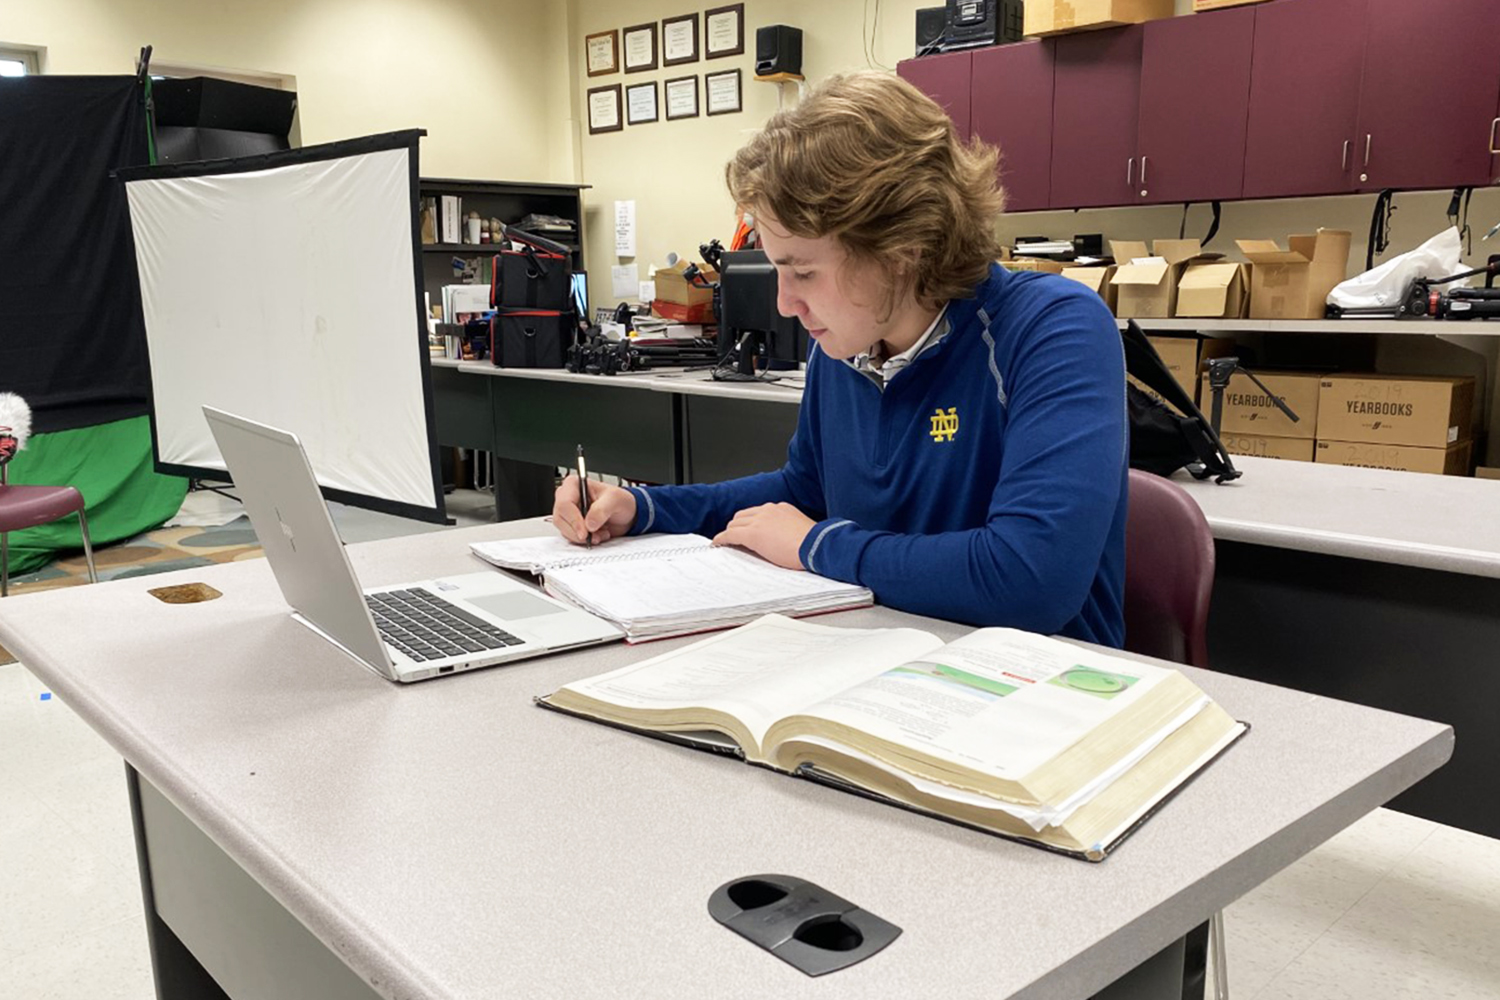 Senior Michael Cutler works on Calculus homework after school on March 11th, 2021.